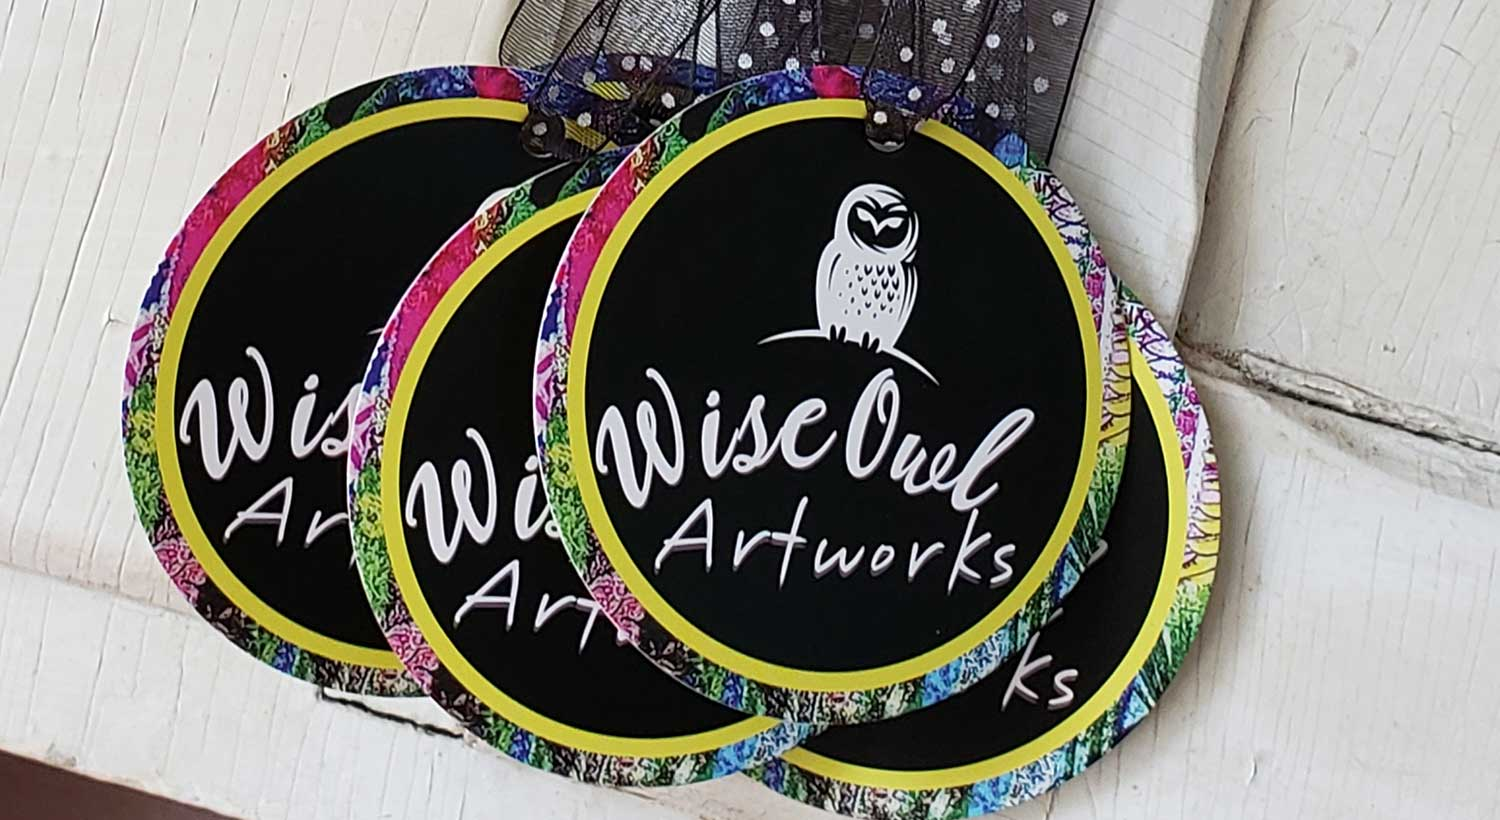 Wise Owl Artworks Die-Cut Hang Tags Printed by NextDayFlyers